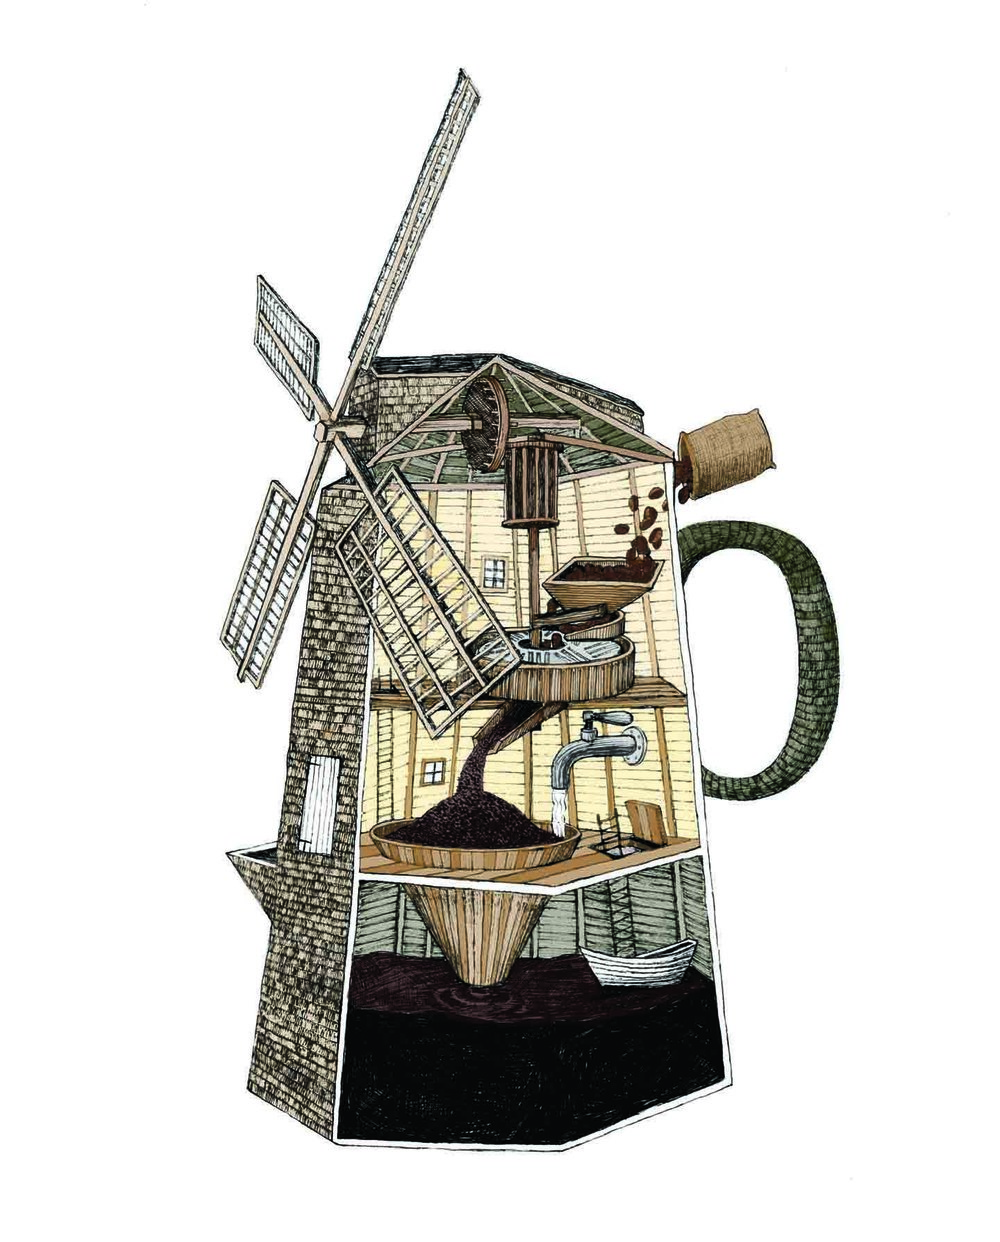 Grindstone Coffee Mill    ink and digital  2016